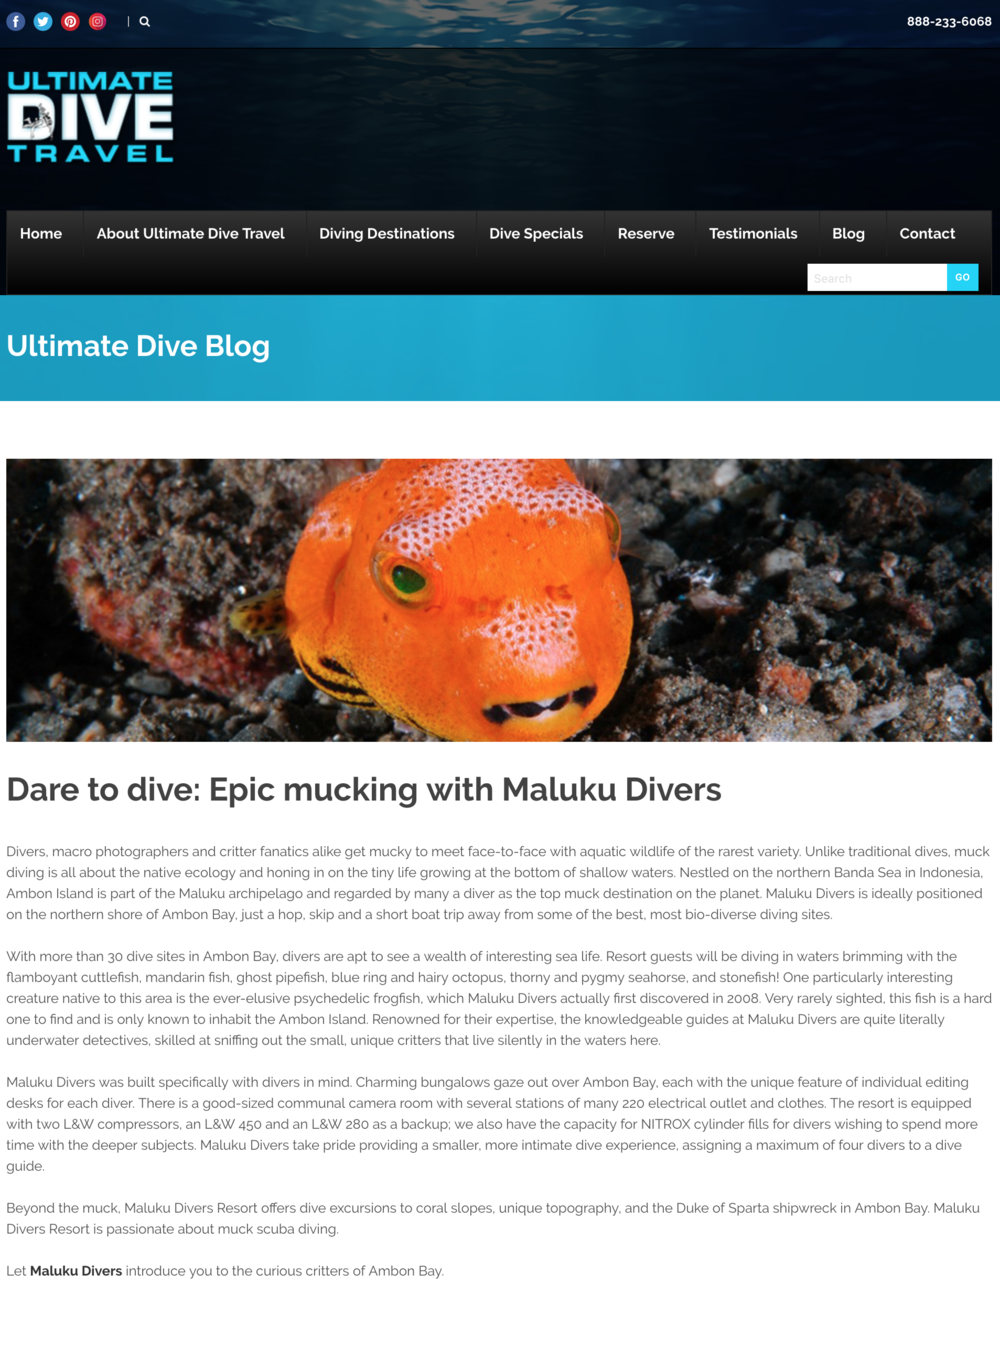 screencapture-ultimatedivetravel-dare-to-dive-epic-mucking-with-maluku-divers-2019-01-09-15_28_45.png